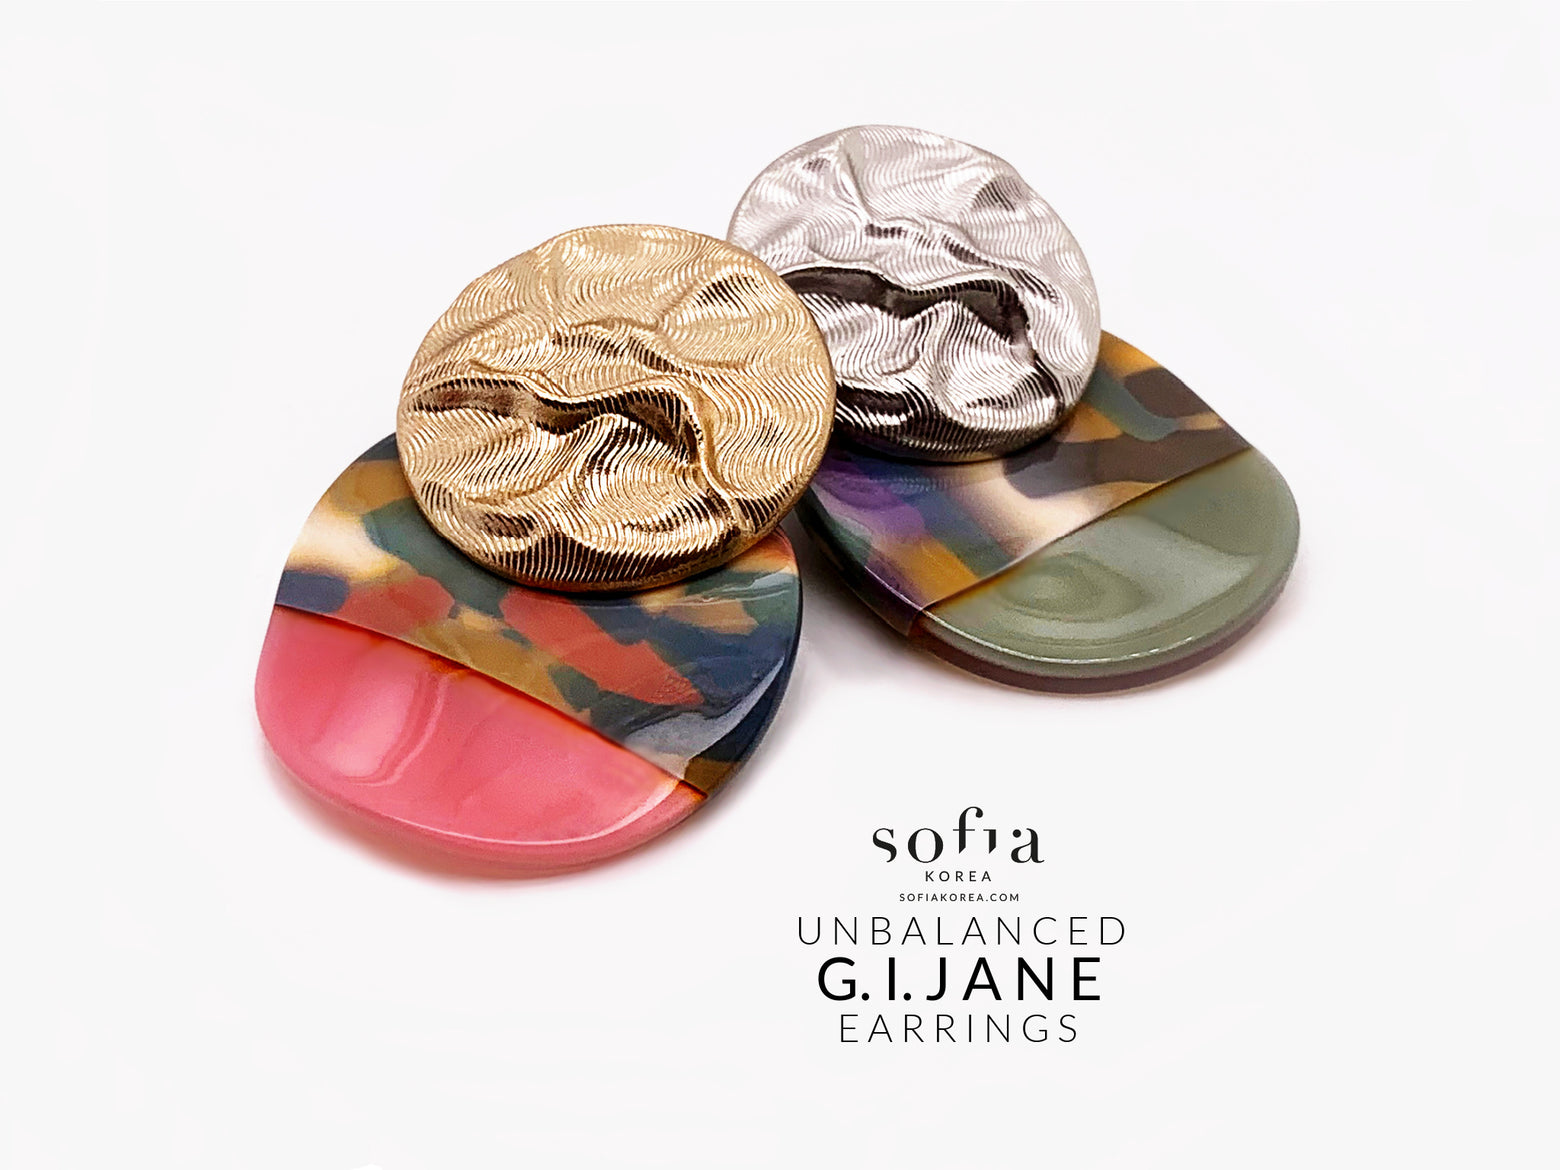 G.I. Jane Earrings - Sofiakorea